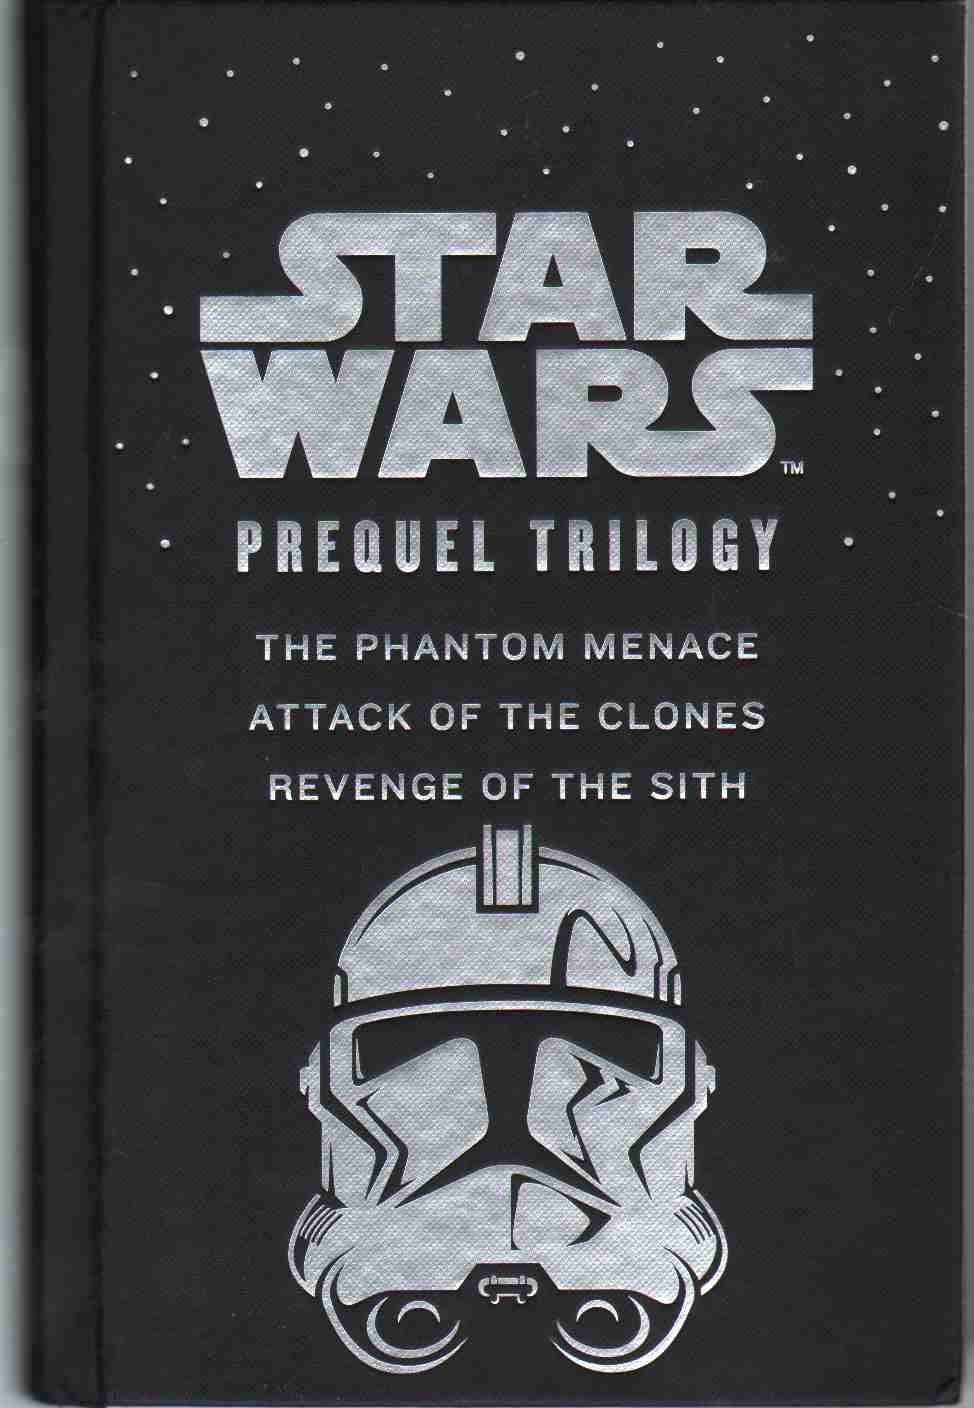 Star Wars: The Prequel Trilogy (Books A Million)